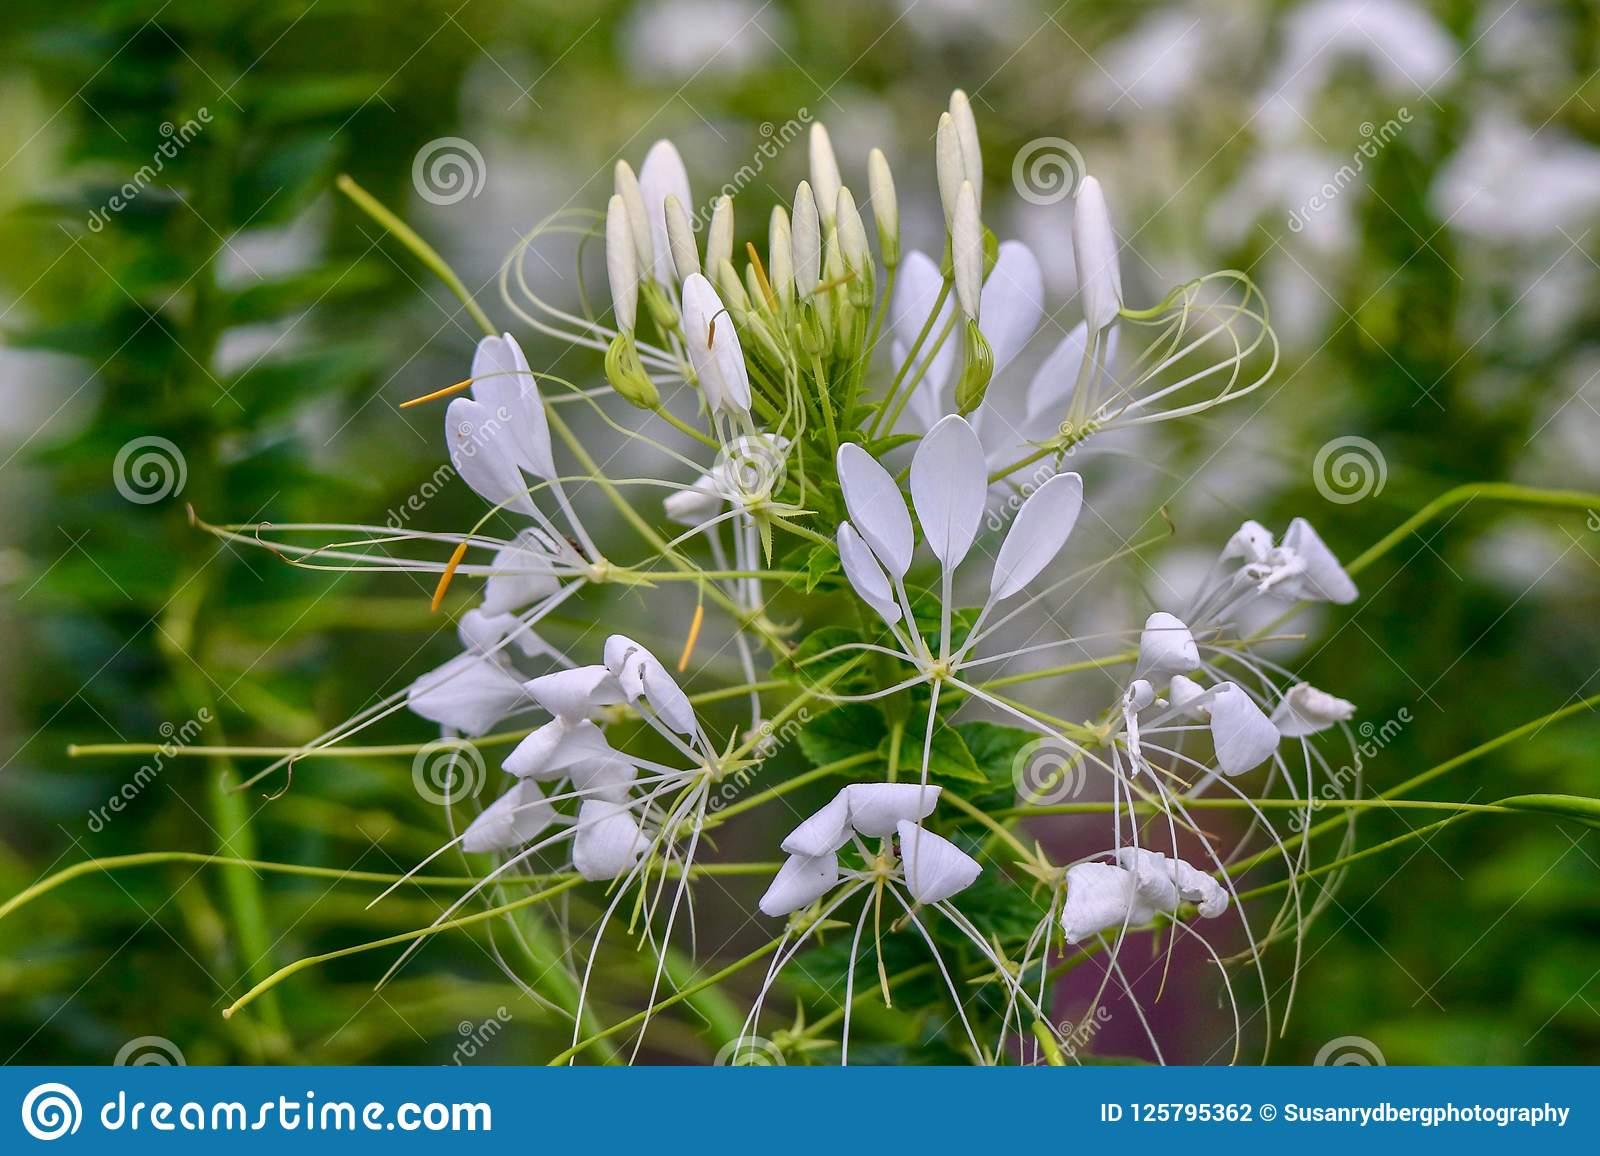 White Spider Flower On A Sunny Day Stock Photo Image Of Meadow